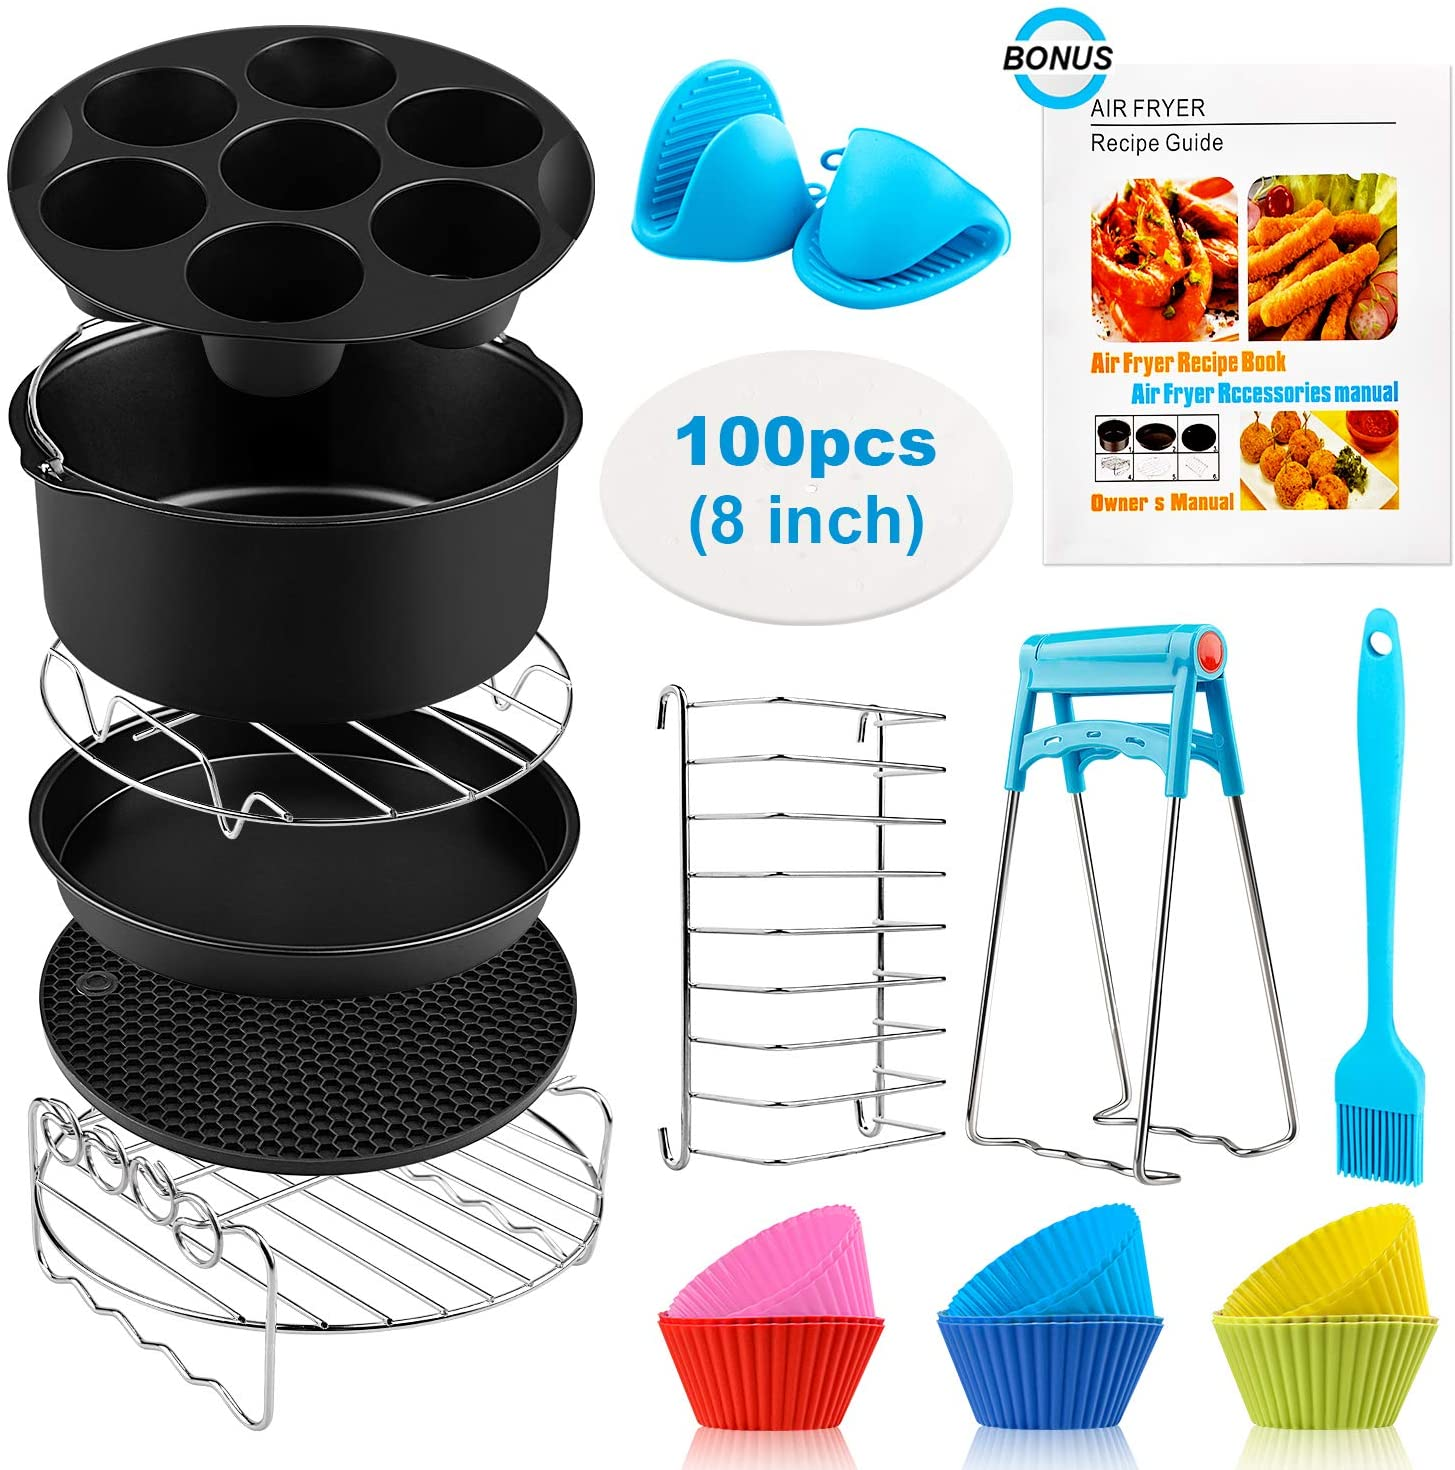 Air Fryer Accessories XL, 8 Inch Set Of 17 For Gowise USA Phillips Ninjia Cosori Cozyna 4.2QT 5.3QT 5.5QT 5.8QT Deep Air Fryer with Recipes Cookbook and 12 Silicone Muffin Cups Universal Accessories